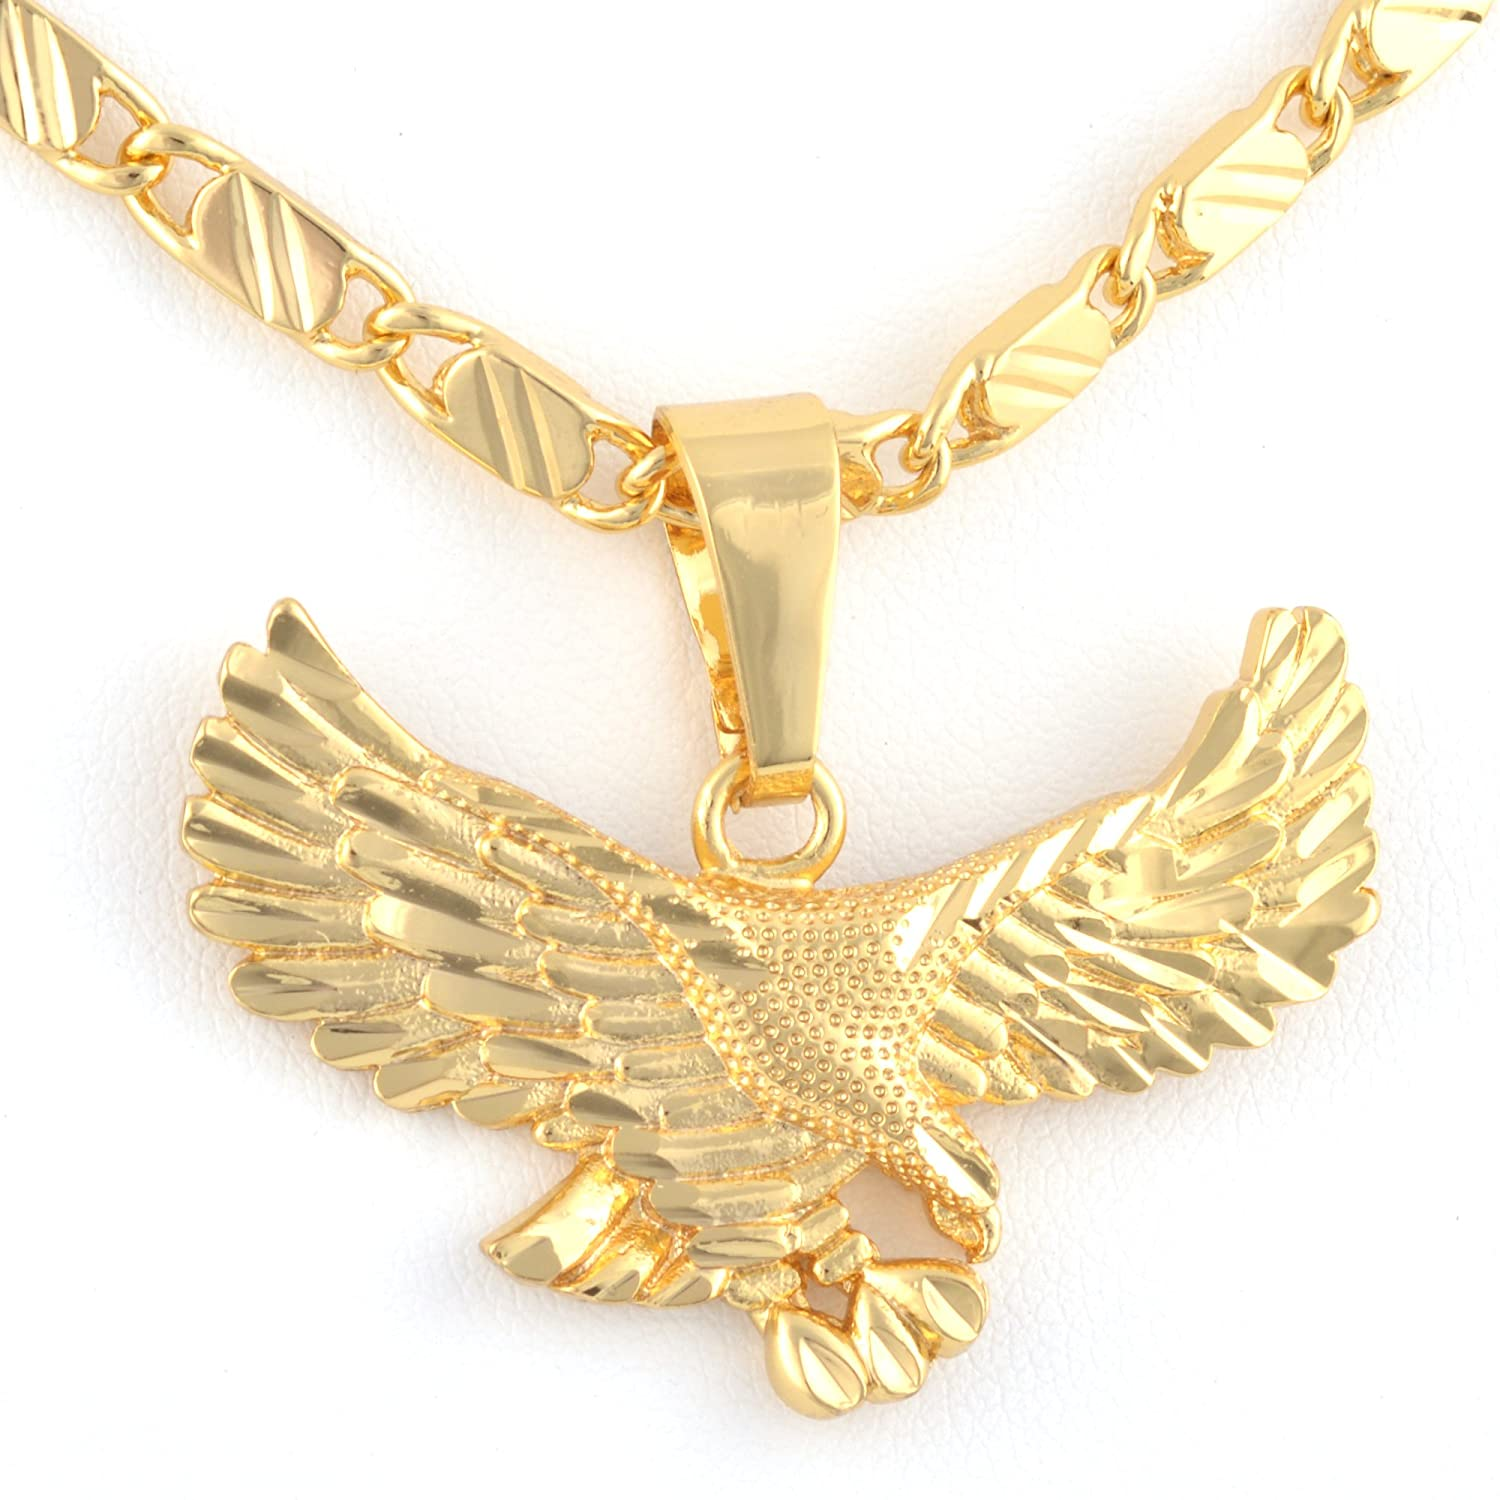 Amazon mens womens eagle hawl pendant 24k real gold plated amazon mens womens eagle hawl pendant 24k real gold plated necklace chain 40 x 28mm pendant 600 x 2mm necklace chain jewelry aloadofball Images